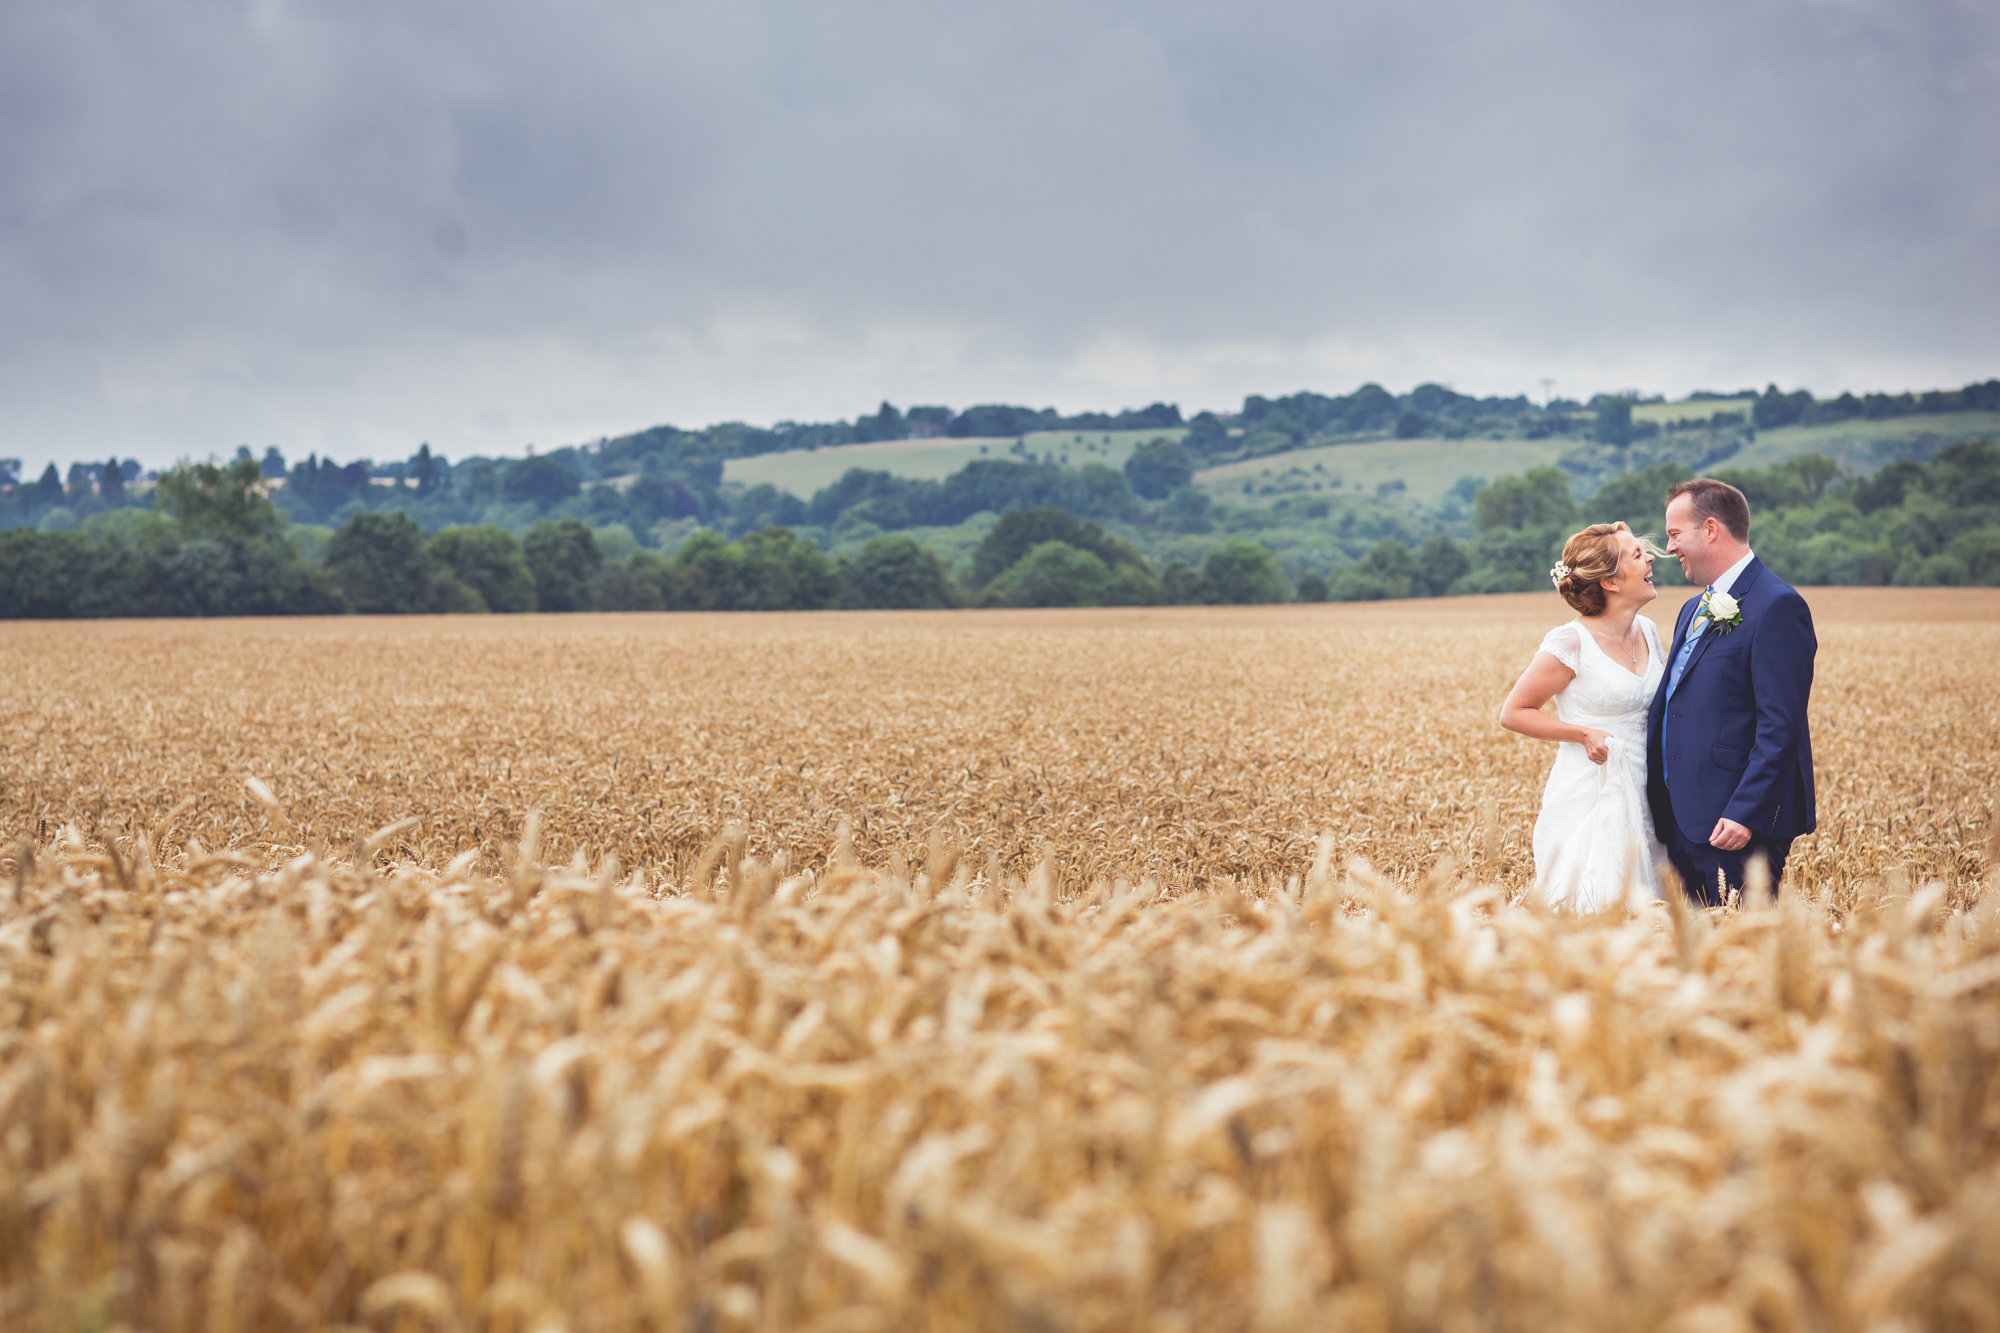 Bride and Groom portrait shot in a wheat field in the countryside.